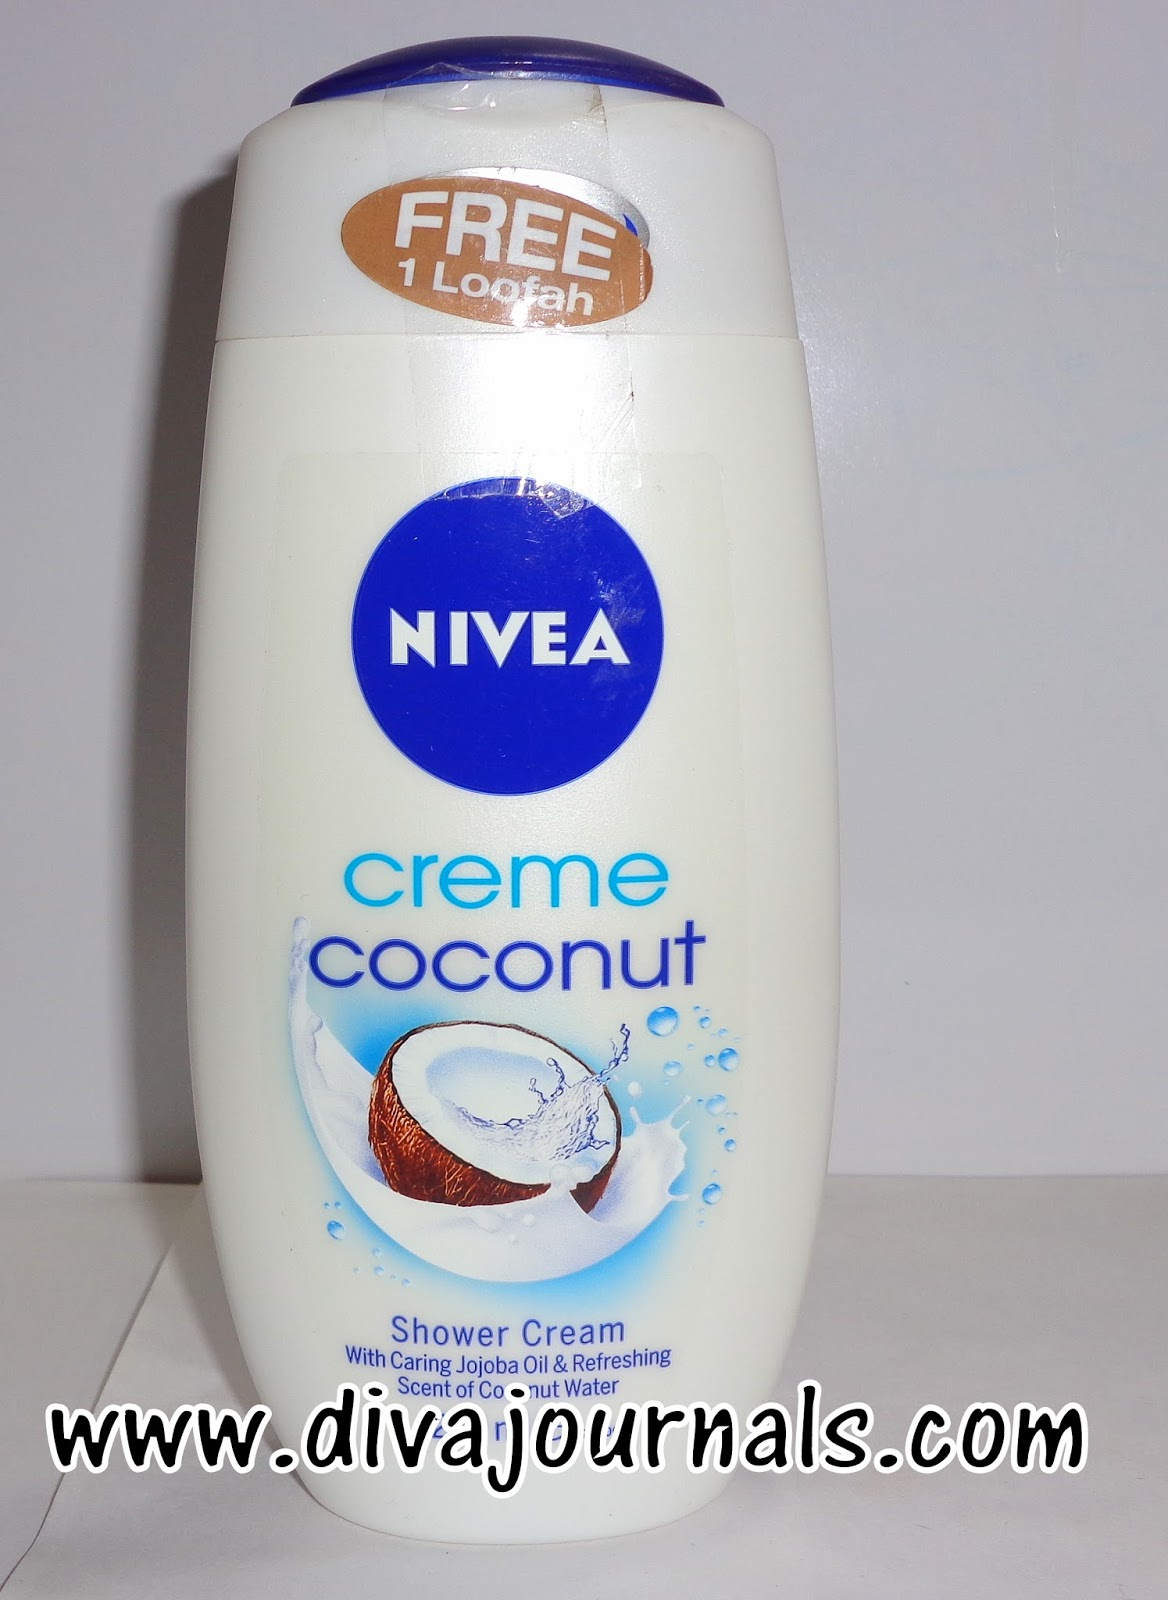 Nivea Frangipani & Oil Shower Gel and Creme Coconut Shower Cream Review